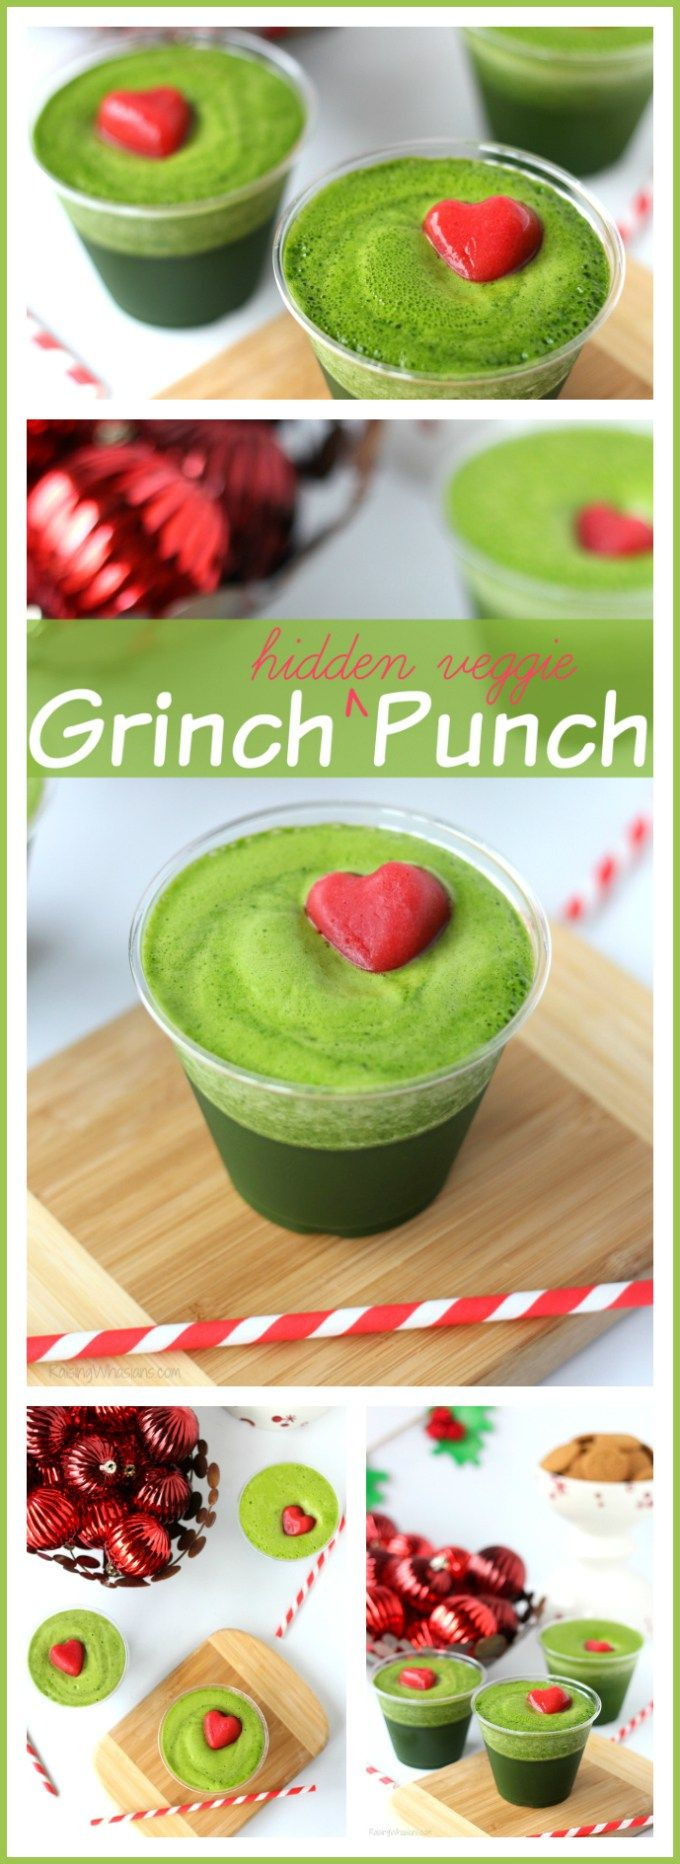 Kid-Approved Christmas Grinch Punch - Raising Whasians